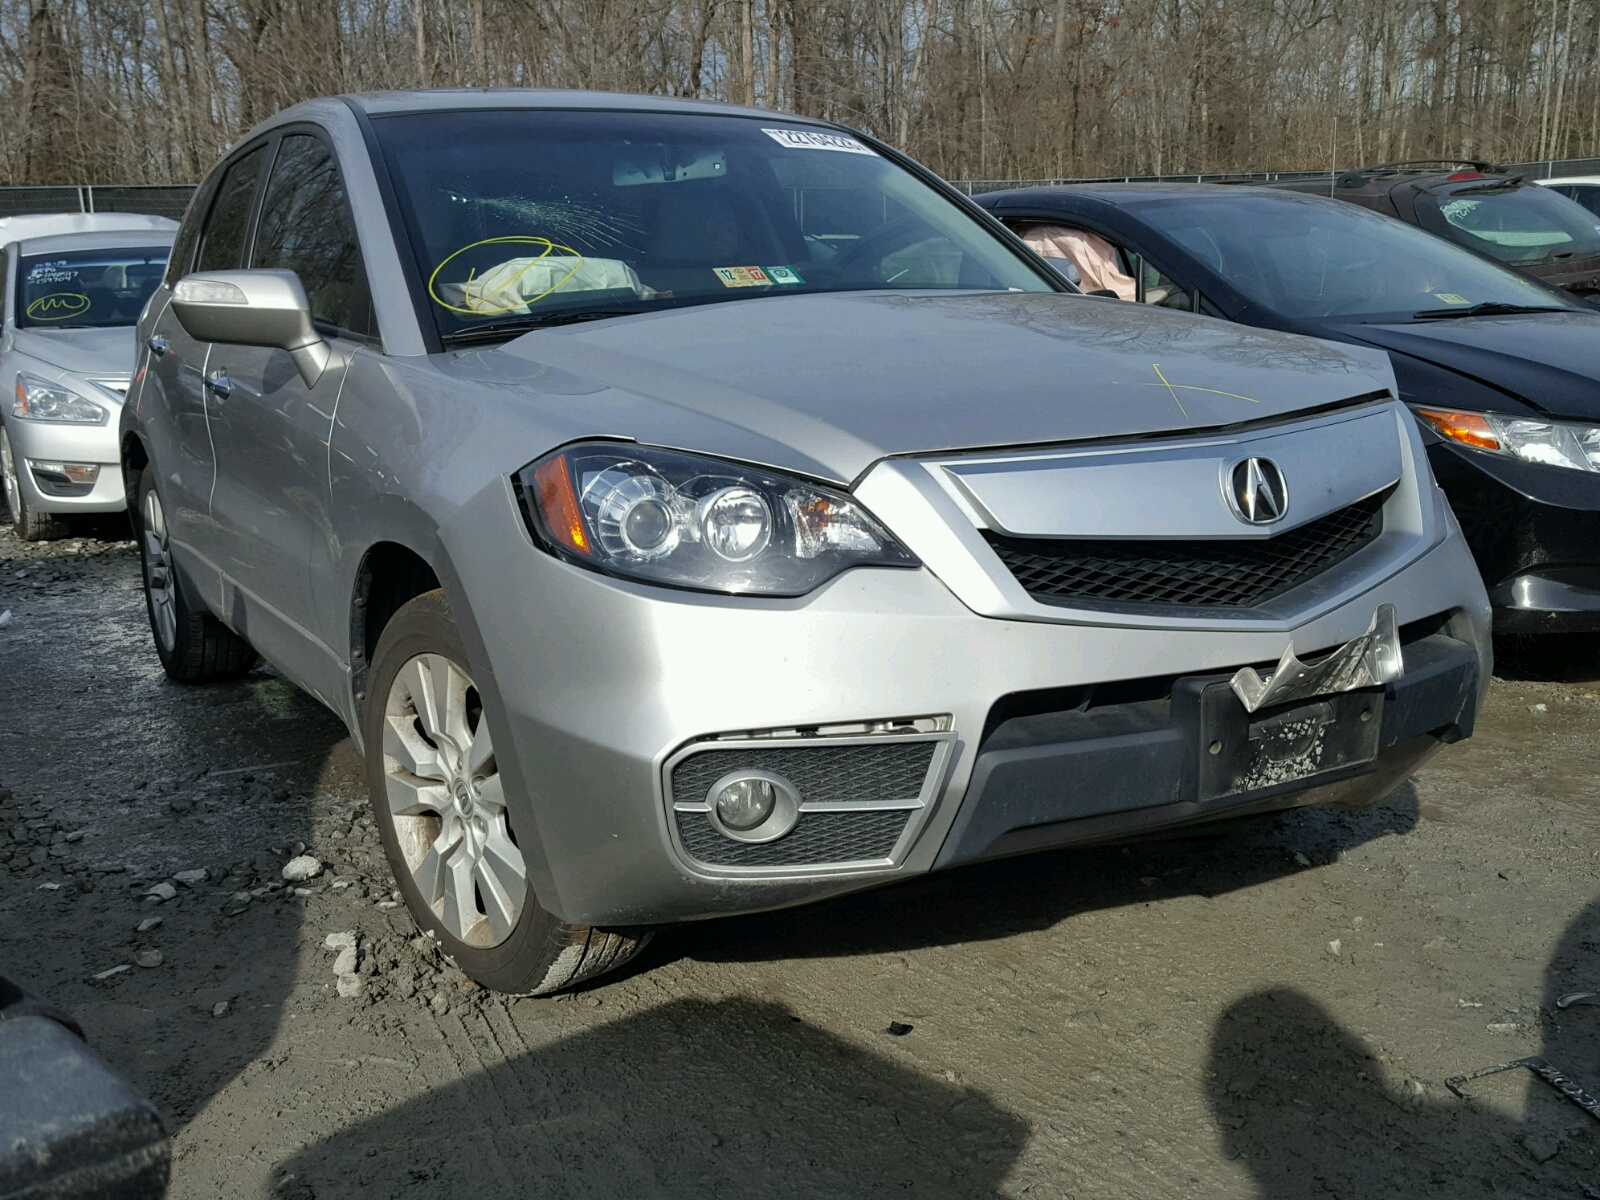 rdx save up youtube to watch sale mdx parts for acura